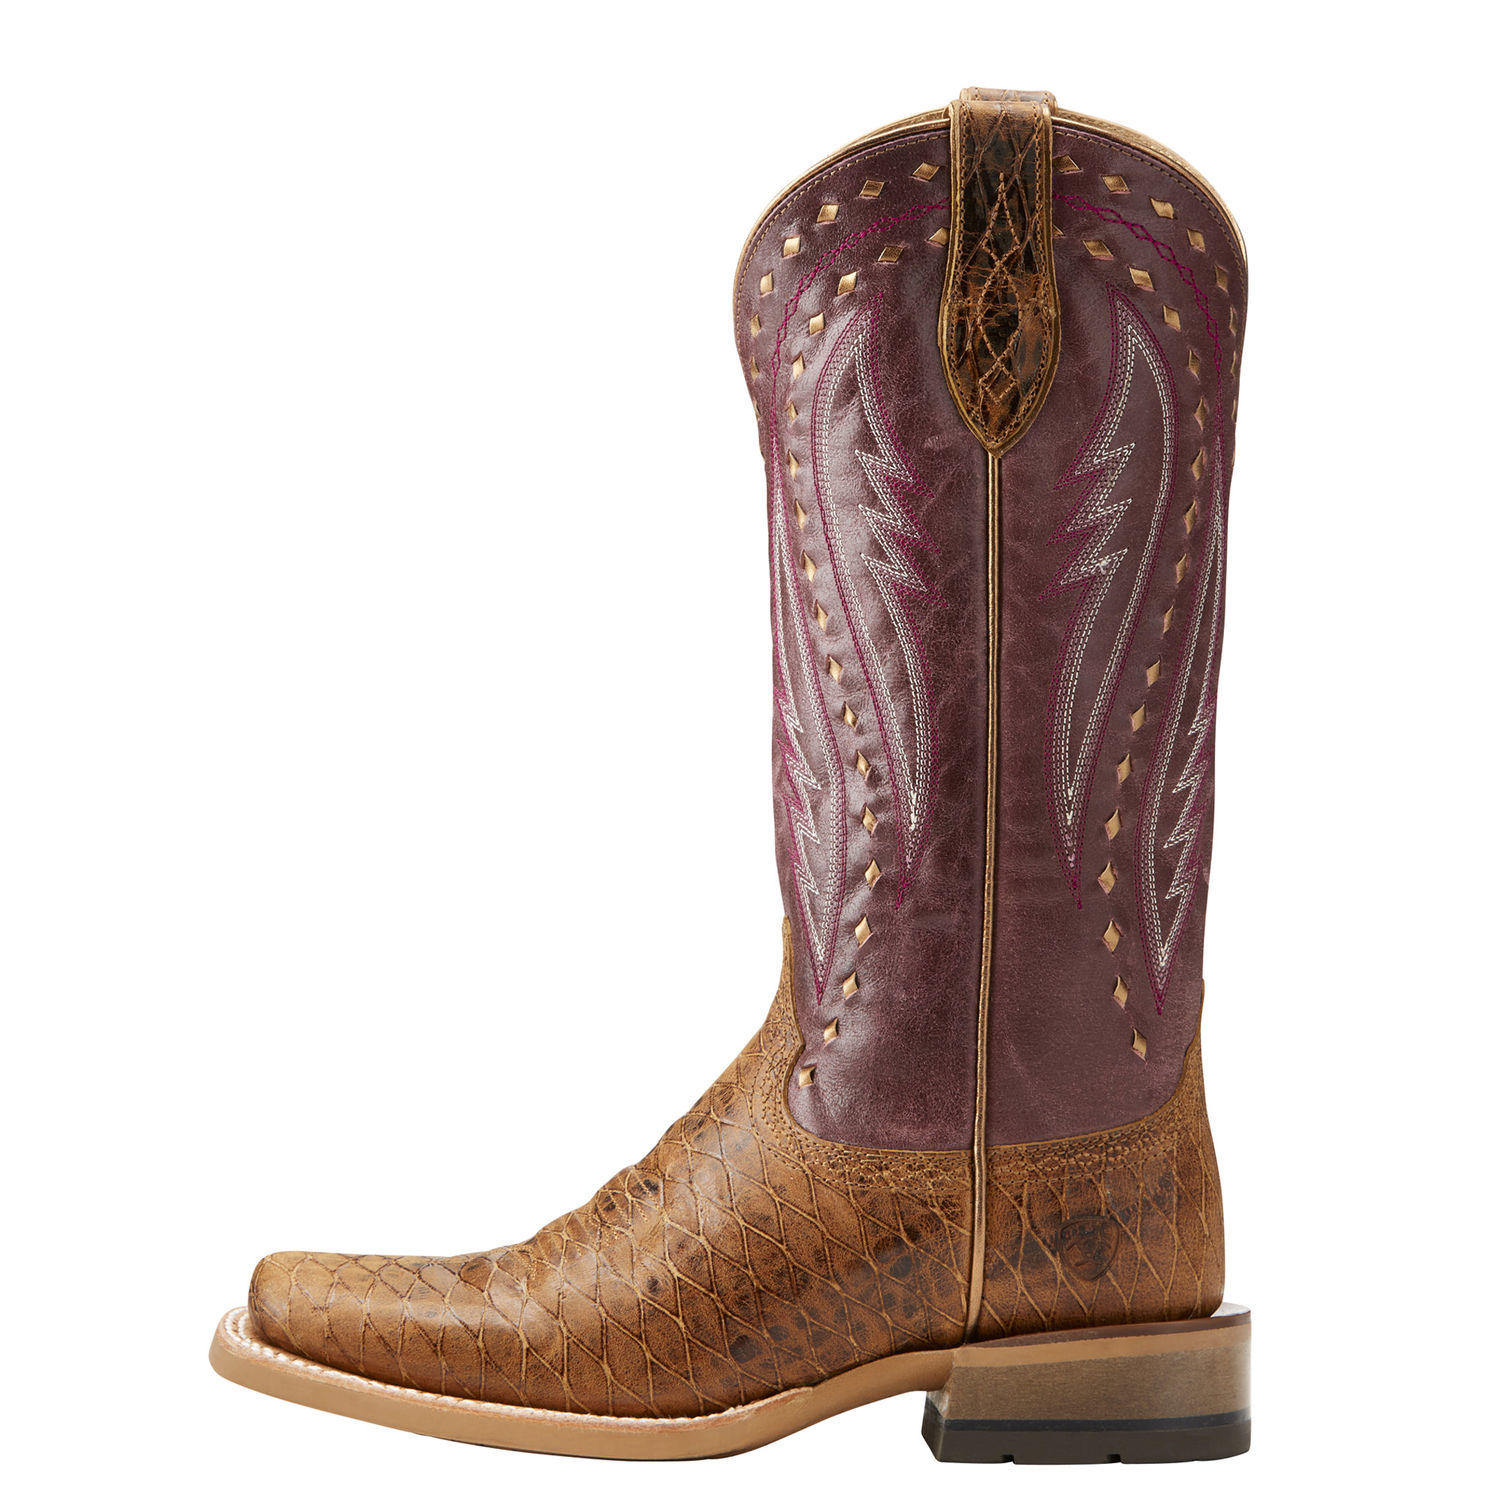 Womens Ariat, cowgirl boot side view. CALLAHAN STYLE 10021663 ARIAT, deep purple and brown leather shaft, foot of boot is tan crocodile textured leather.